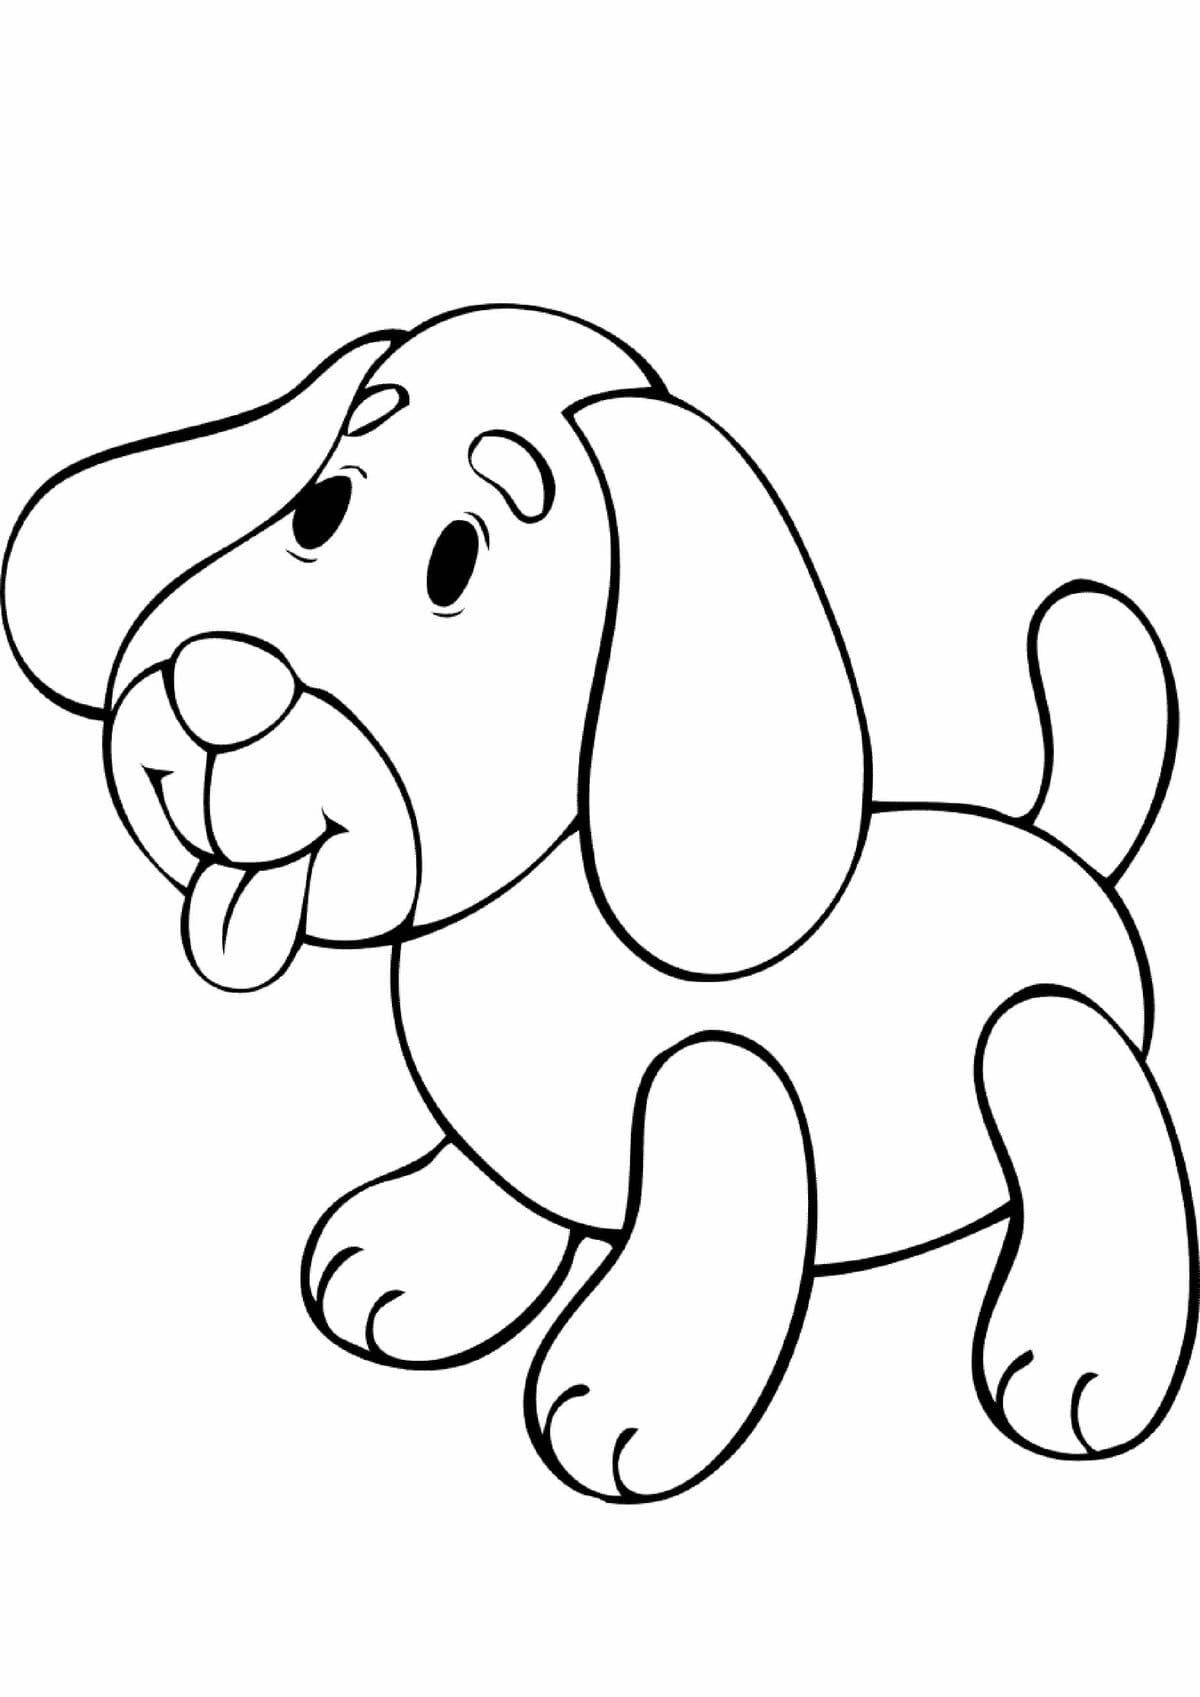 coloring pages 2 year old coloring for 5 year olds my body google search body 2 coloring year old pages